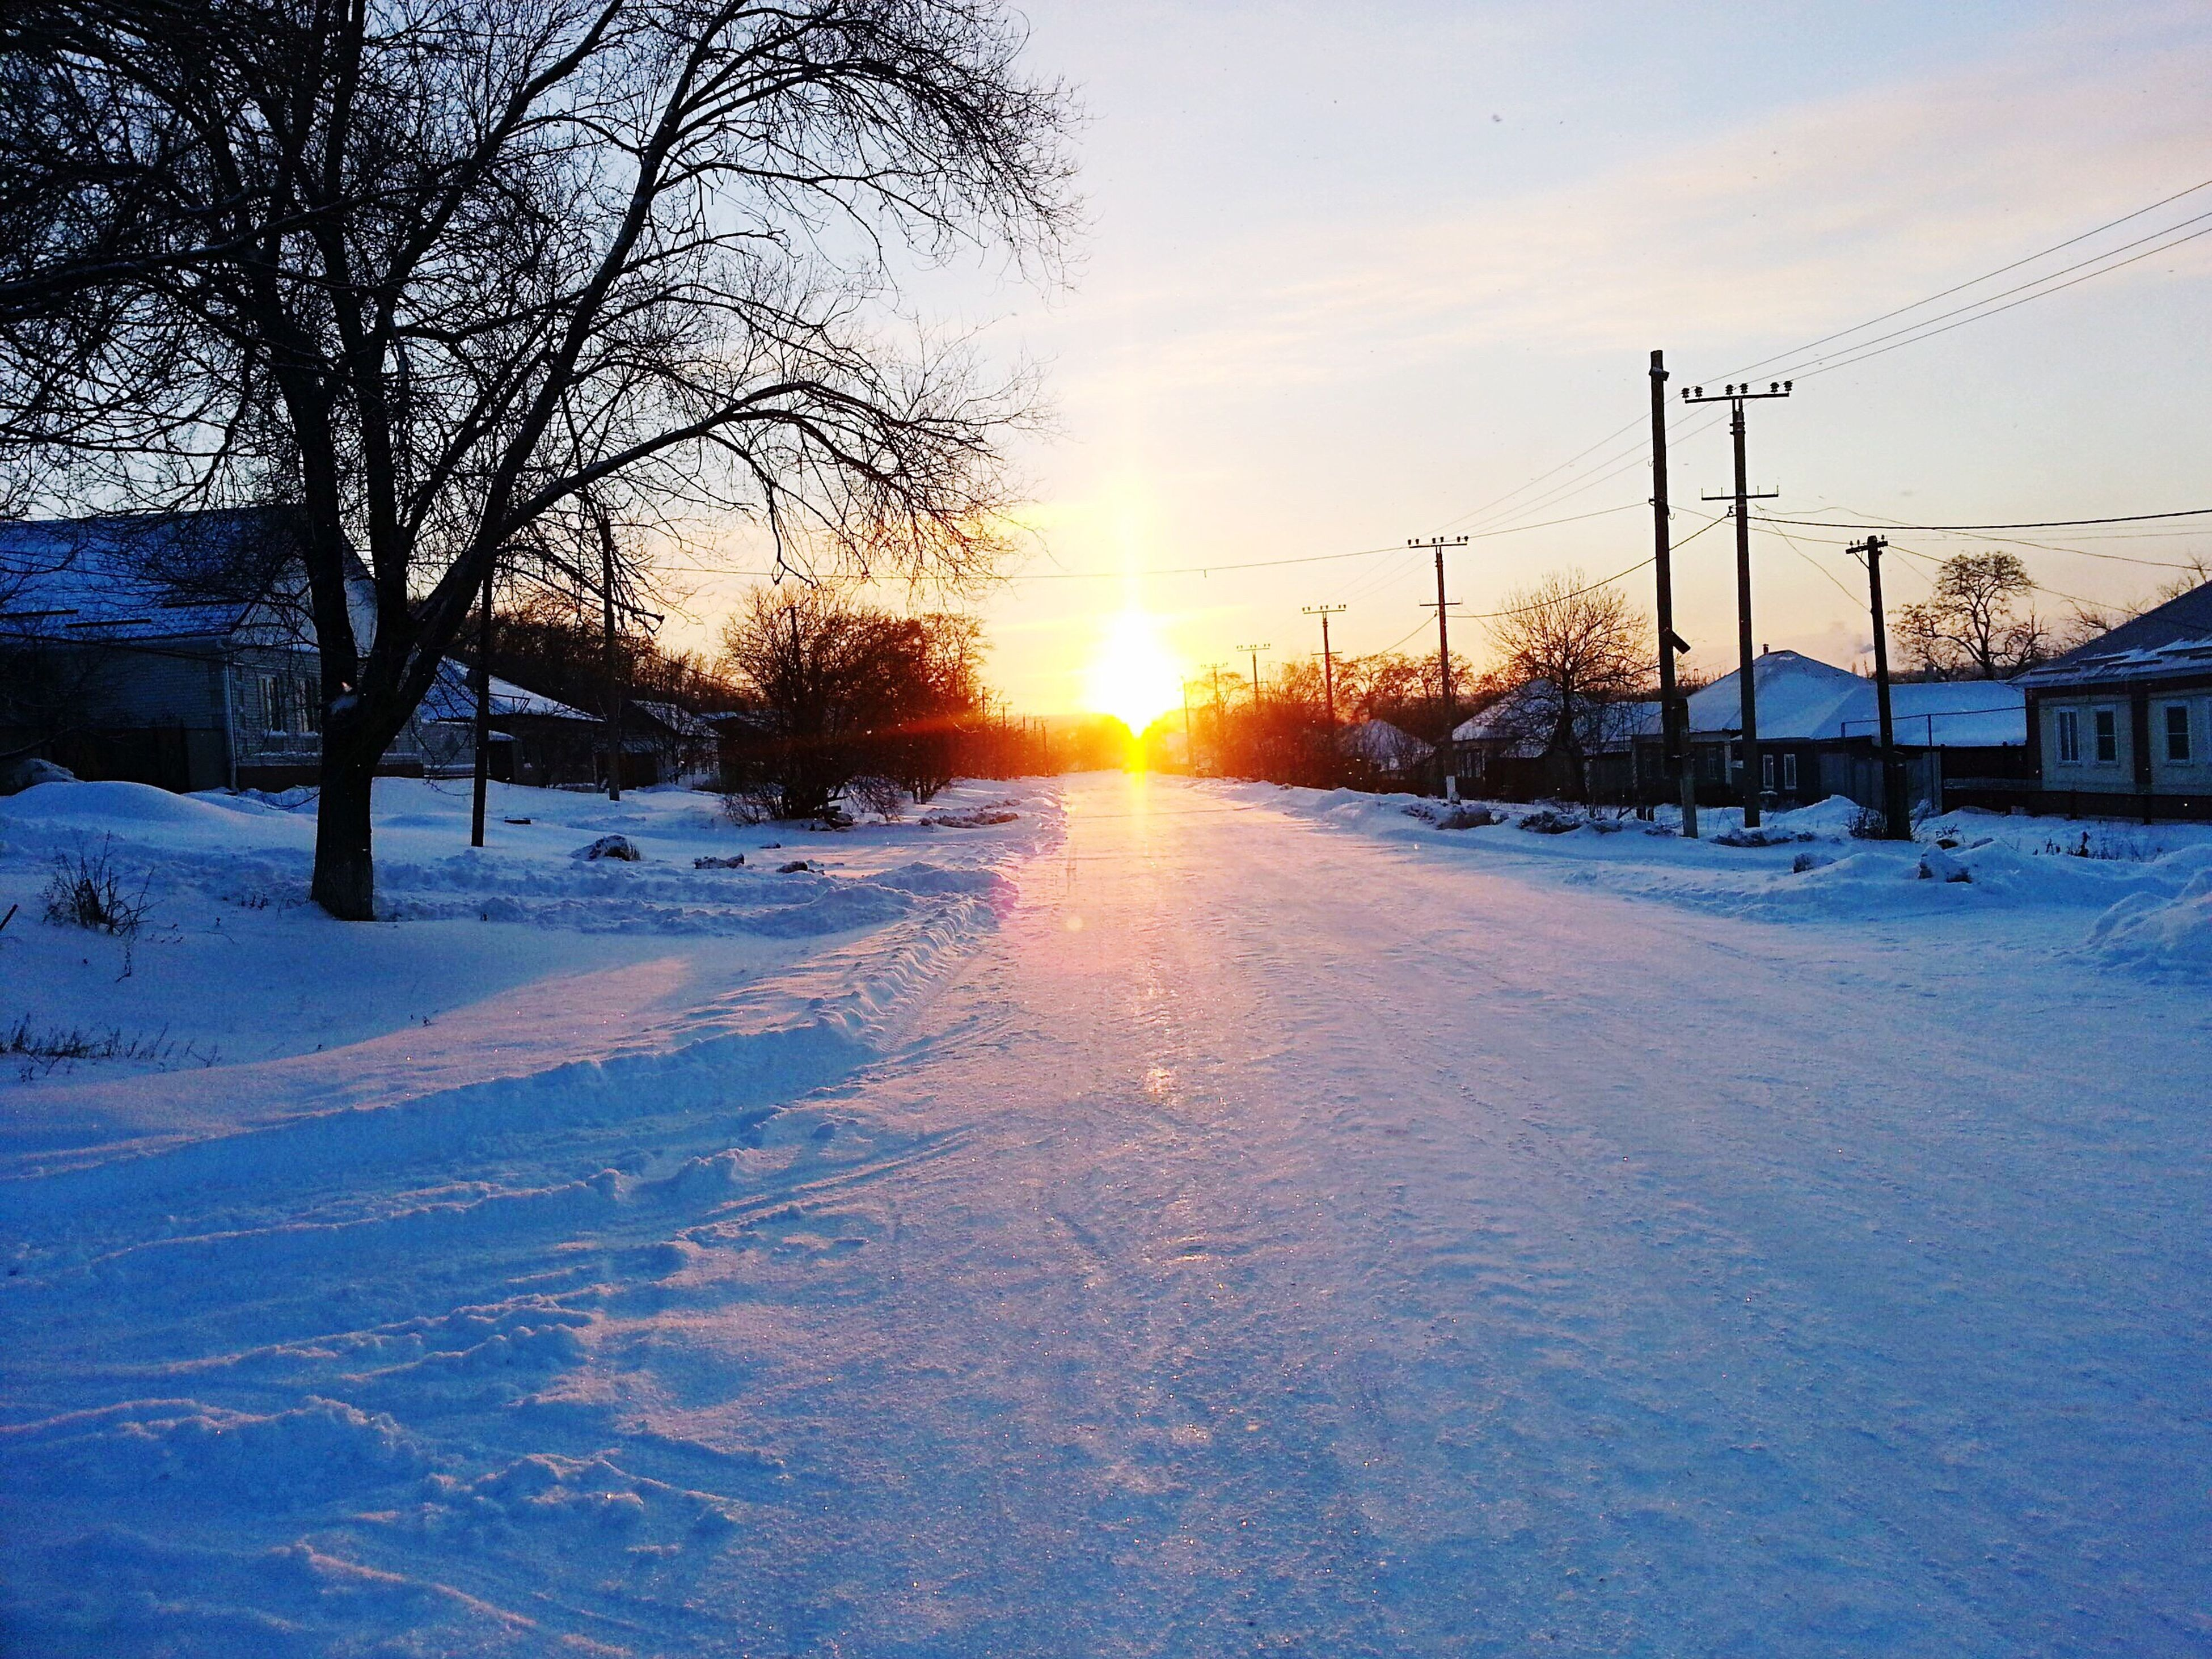 cold temperature, snow, sunset, winter, sun, sunlight, sky, beauty in nature, nature, weather, tree, sunbeam, transportation, no people, outdoors, road, scenics, day